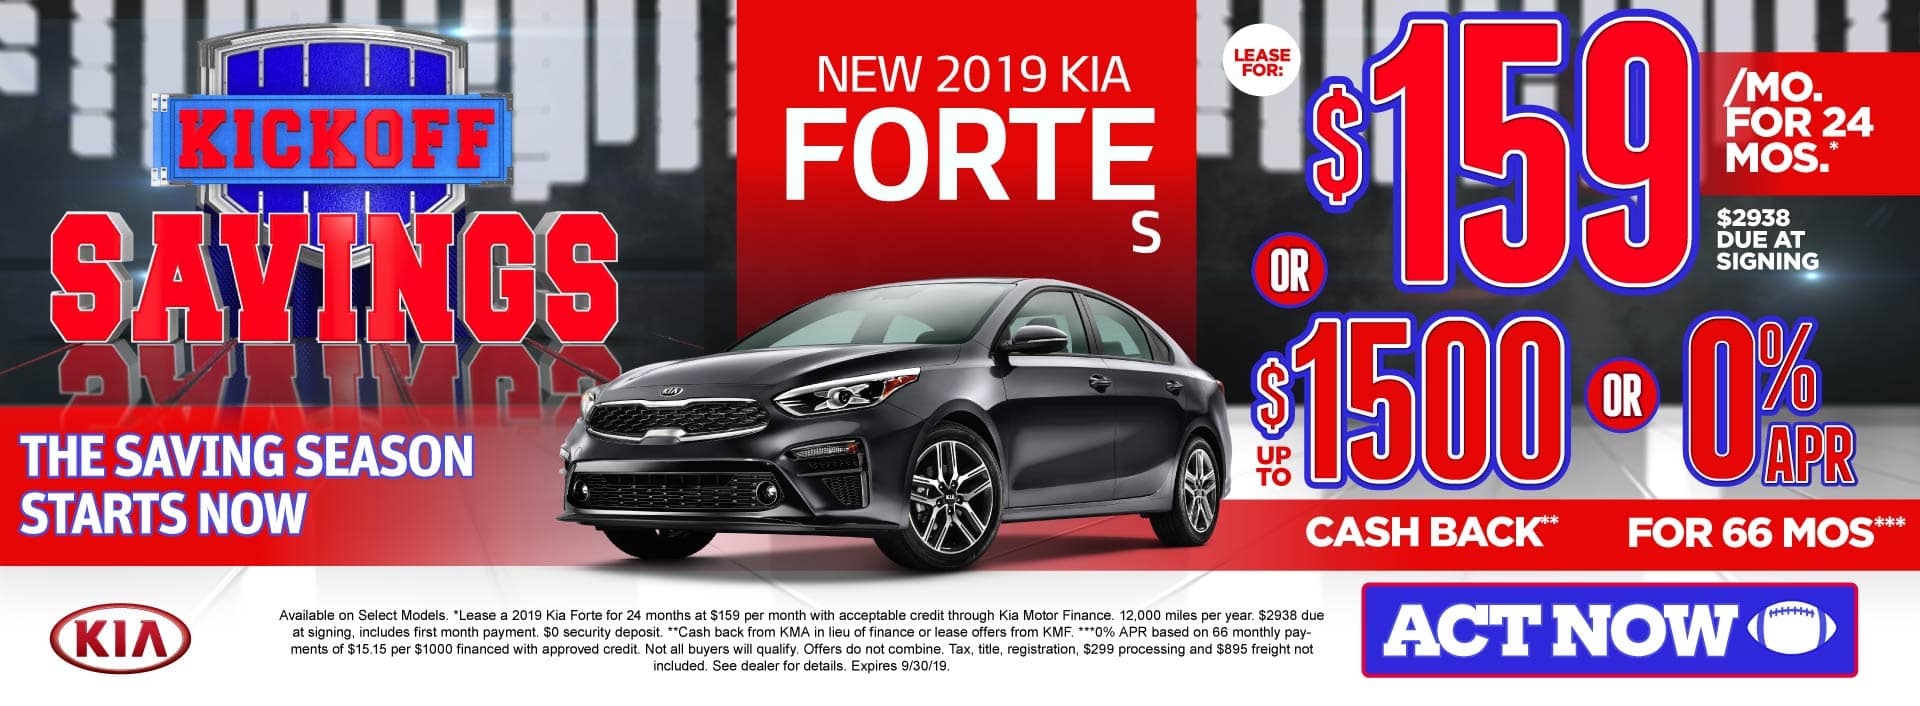 Car Dealerships In Salisbury Md >> Safford Kia Of Salisbury Excellent Selection At A Great Price